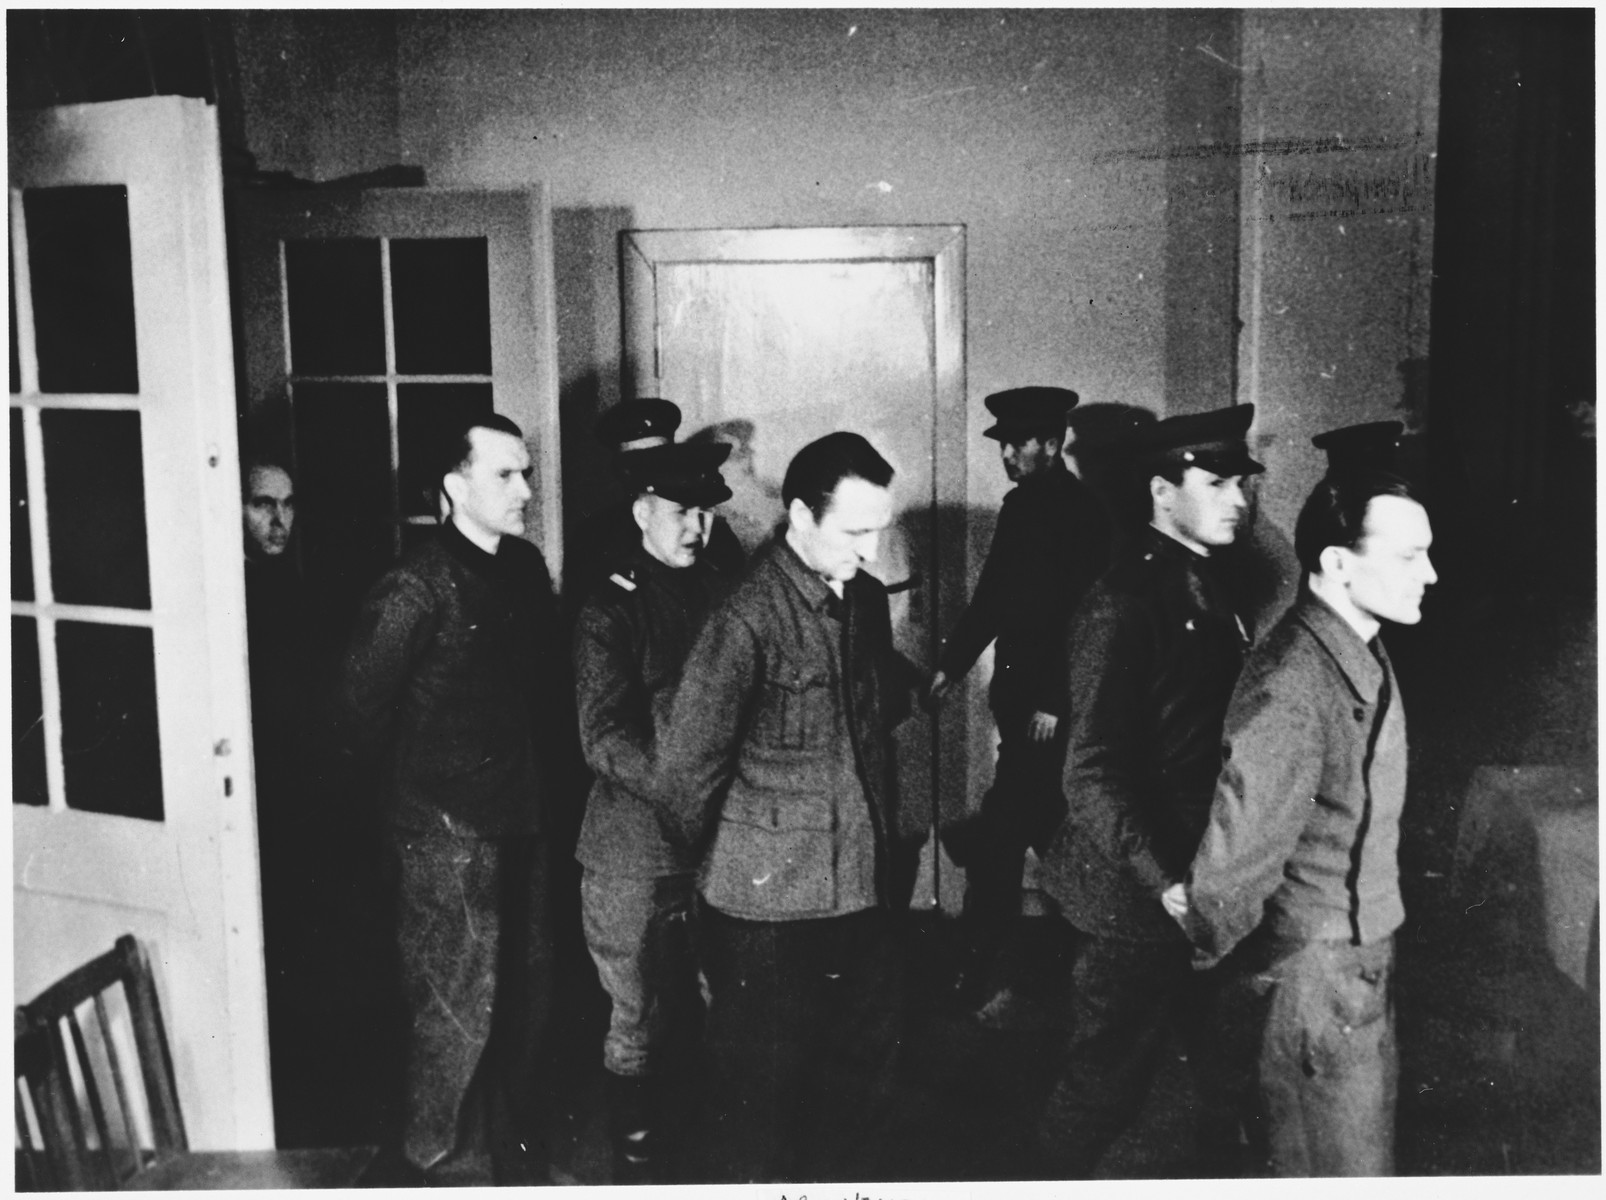 The defendants are led into the courtroom at the Sachsenhausen concentration camp war crimes trial in Berlin.